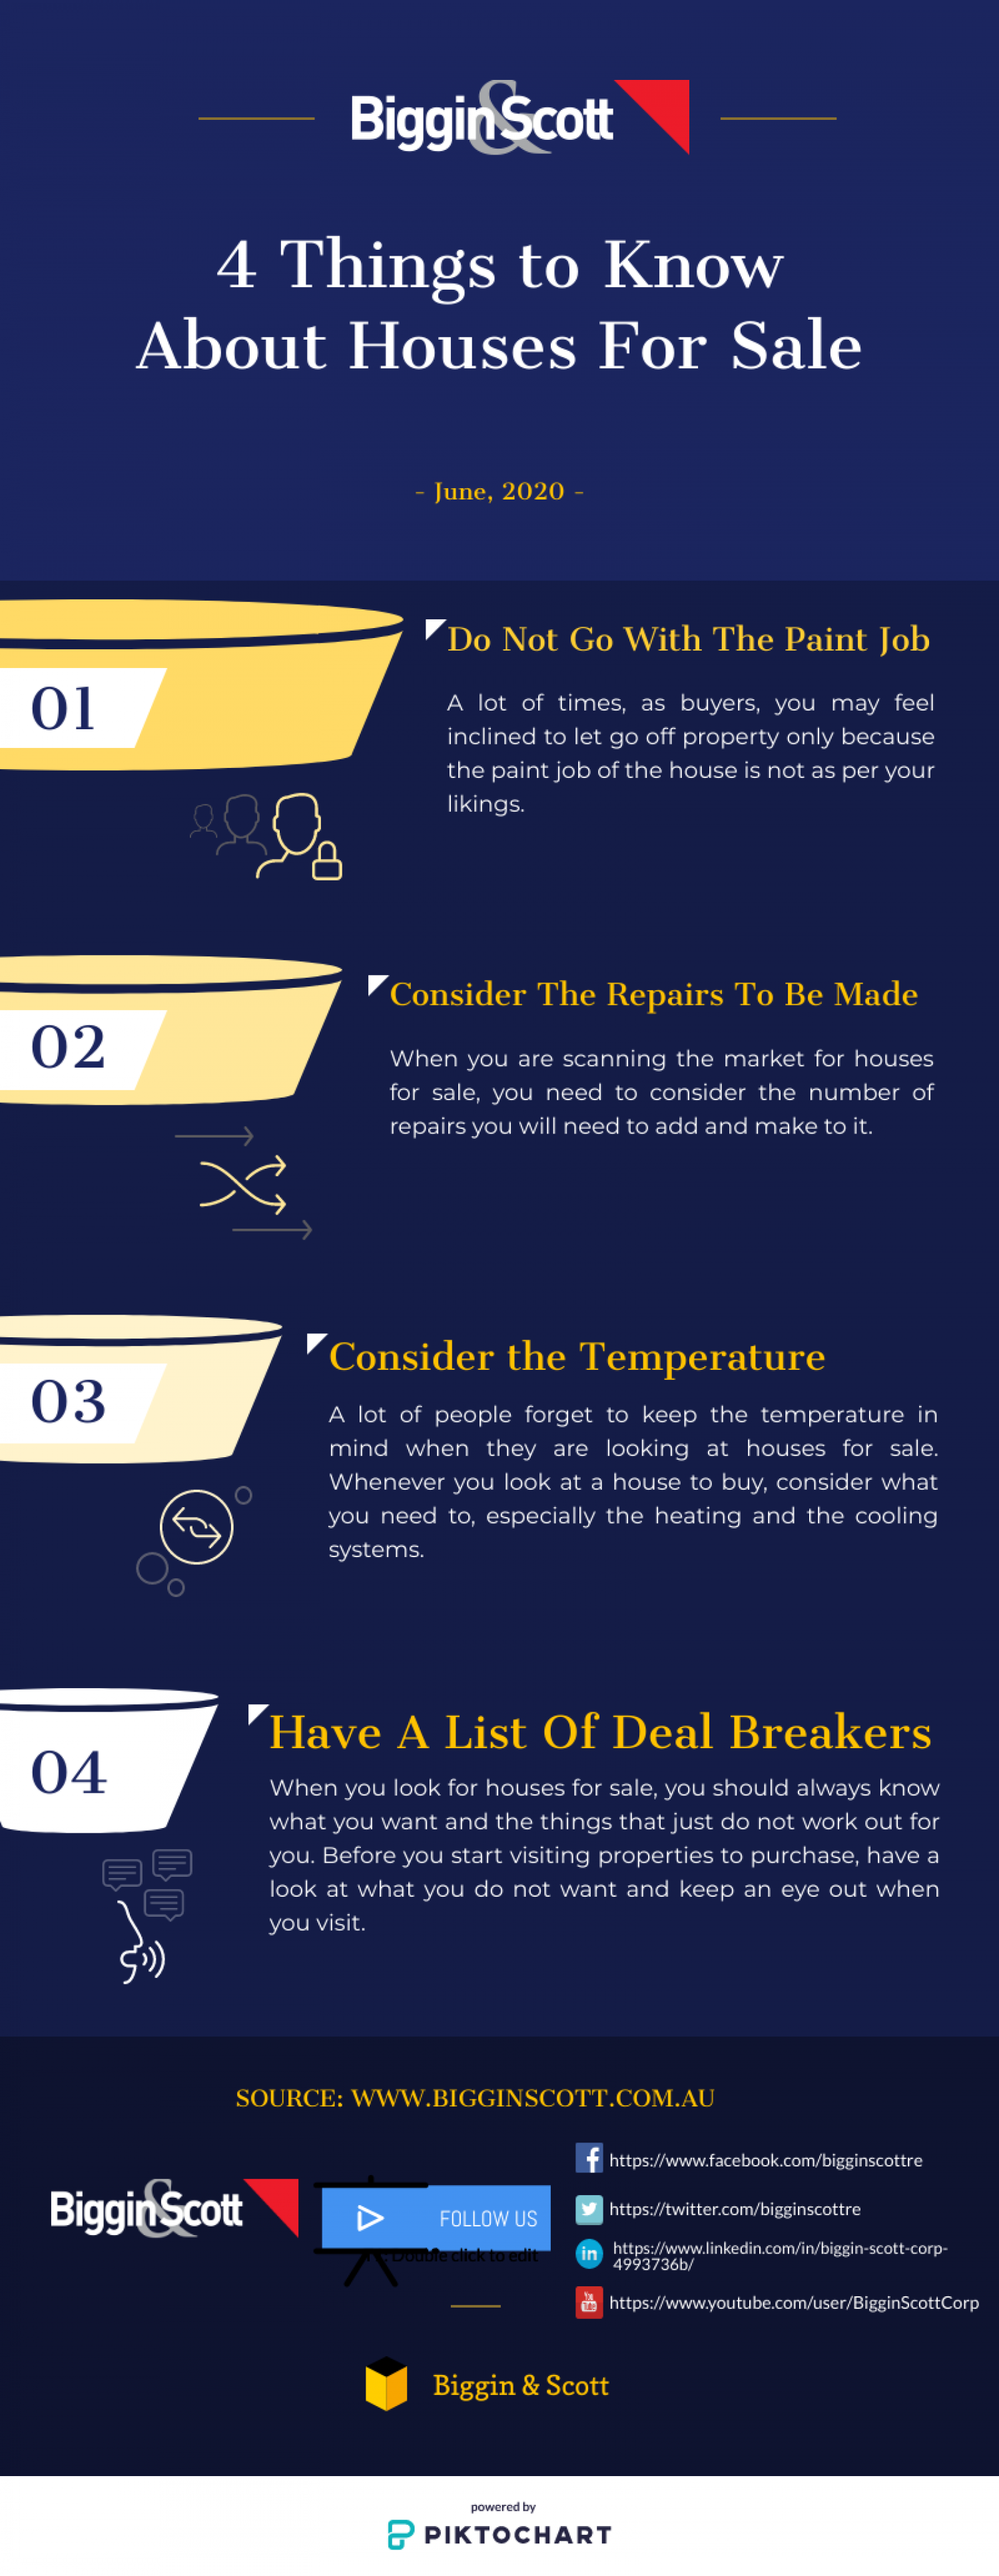 4 Things to Know About Houses For Sale By Biggin & Scott  Infographic